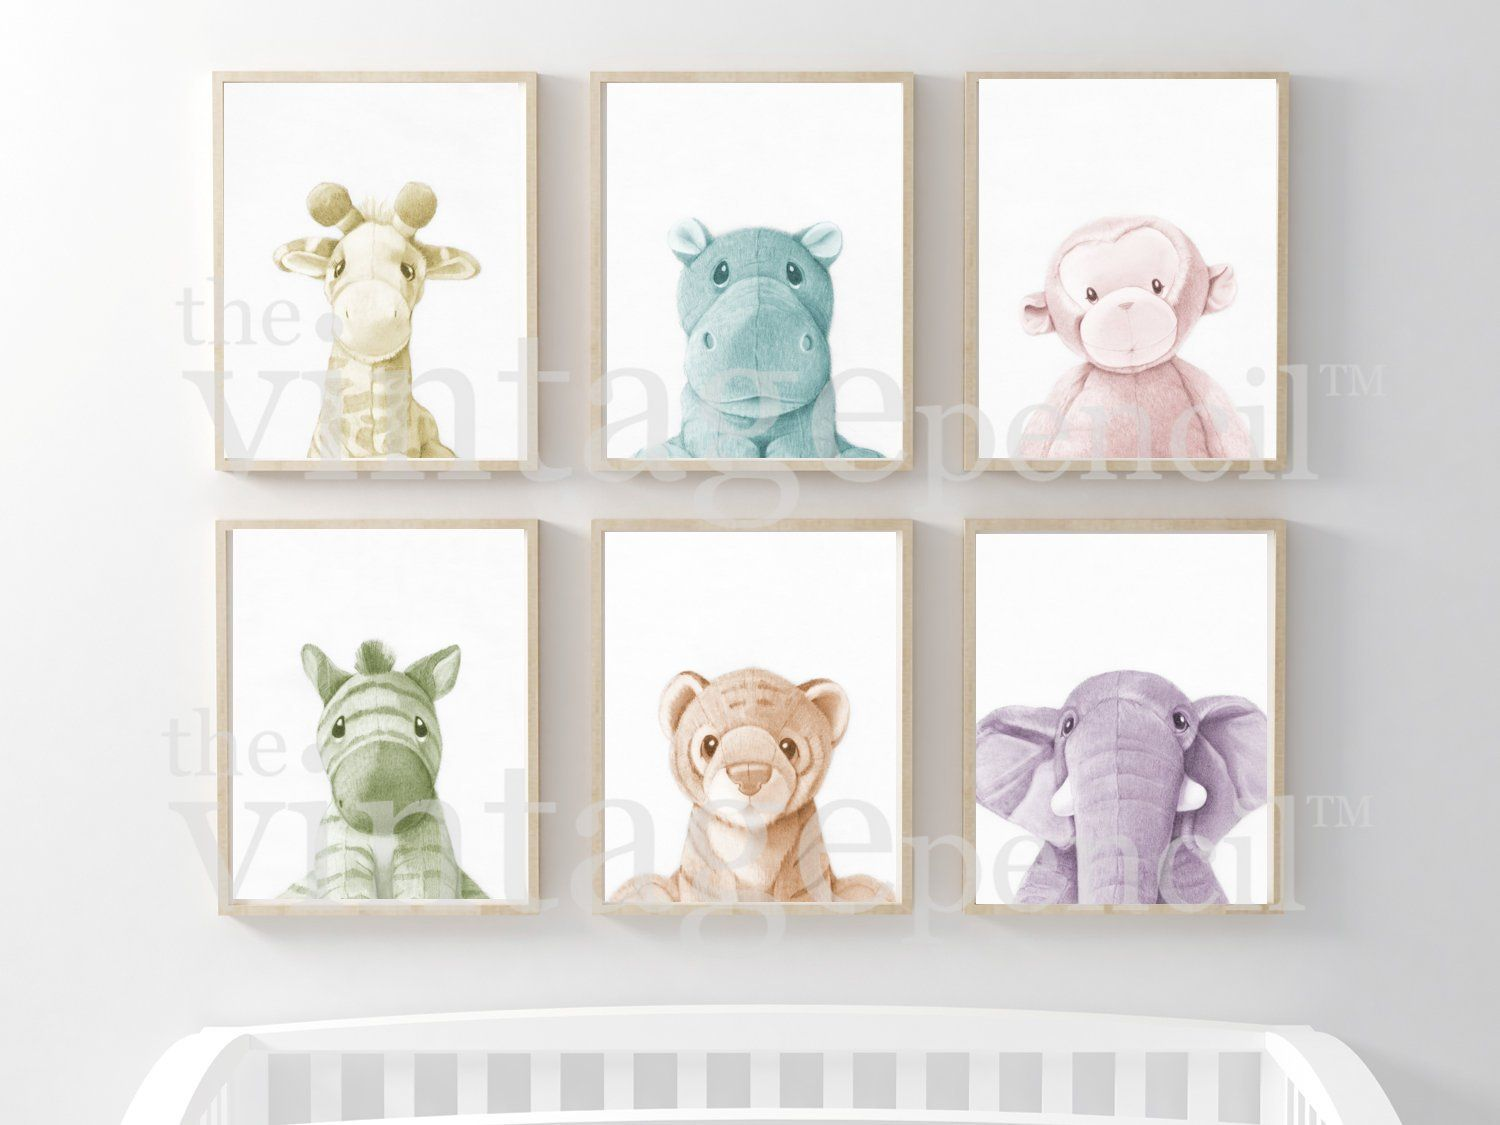 Baby Decor Baby Art Baby Prints Baby Nursery Decor Baby  Etsy